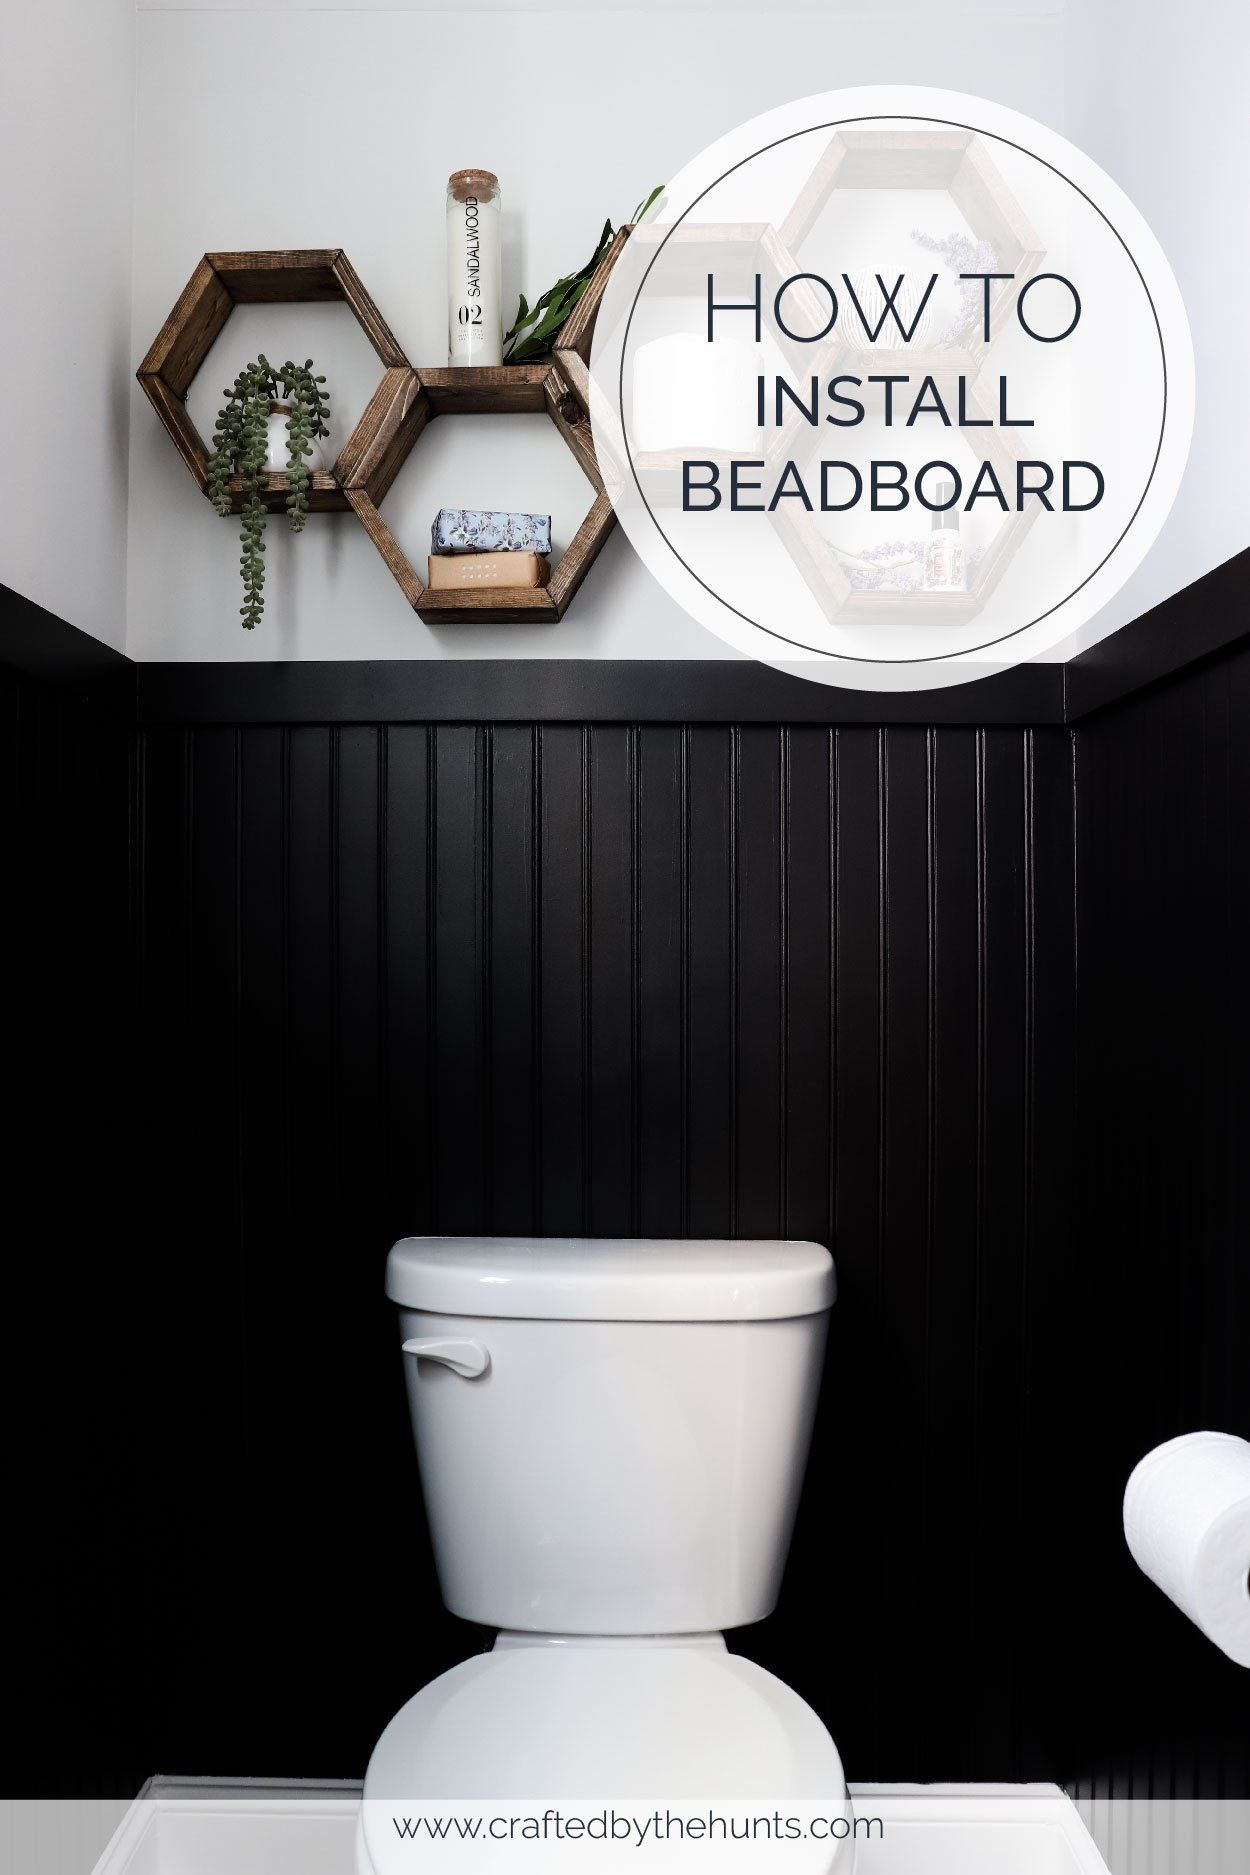 How To Install Beadboard Without Removing Baseboards In 2020 How To Install Beadboard Beadboard Wainscoting Beadboard